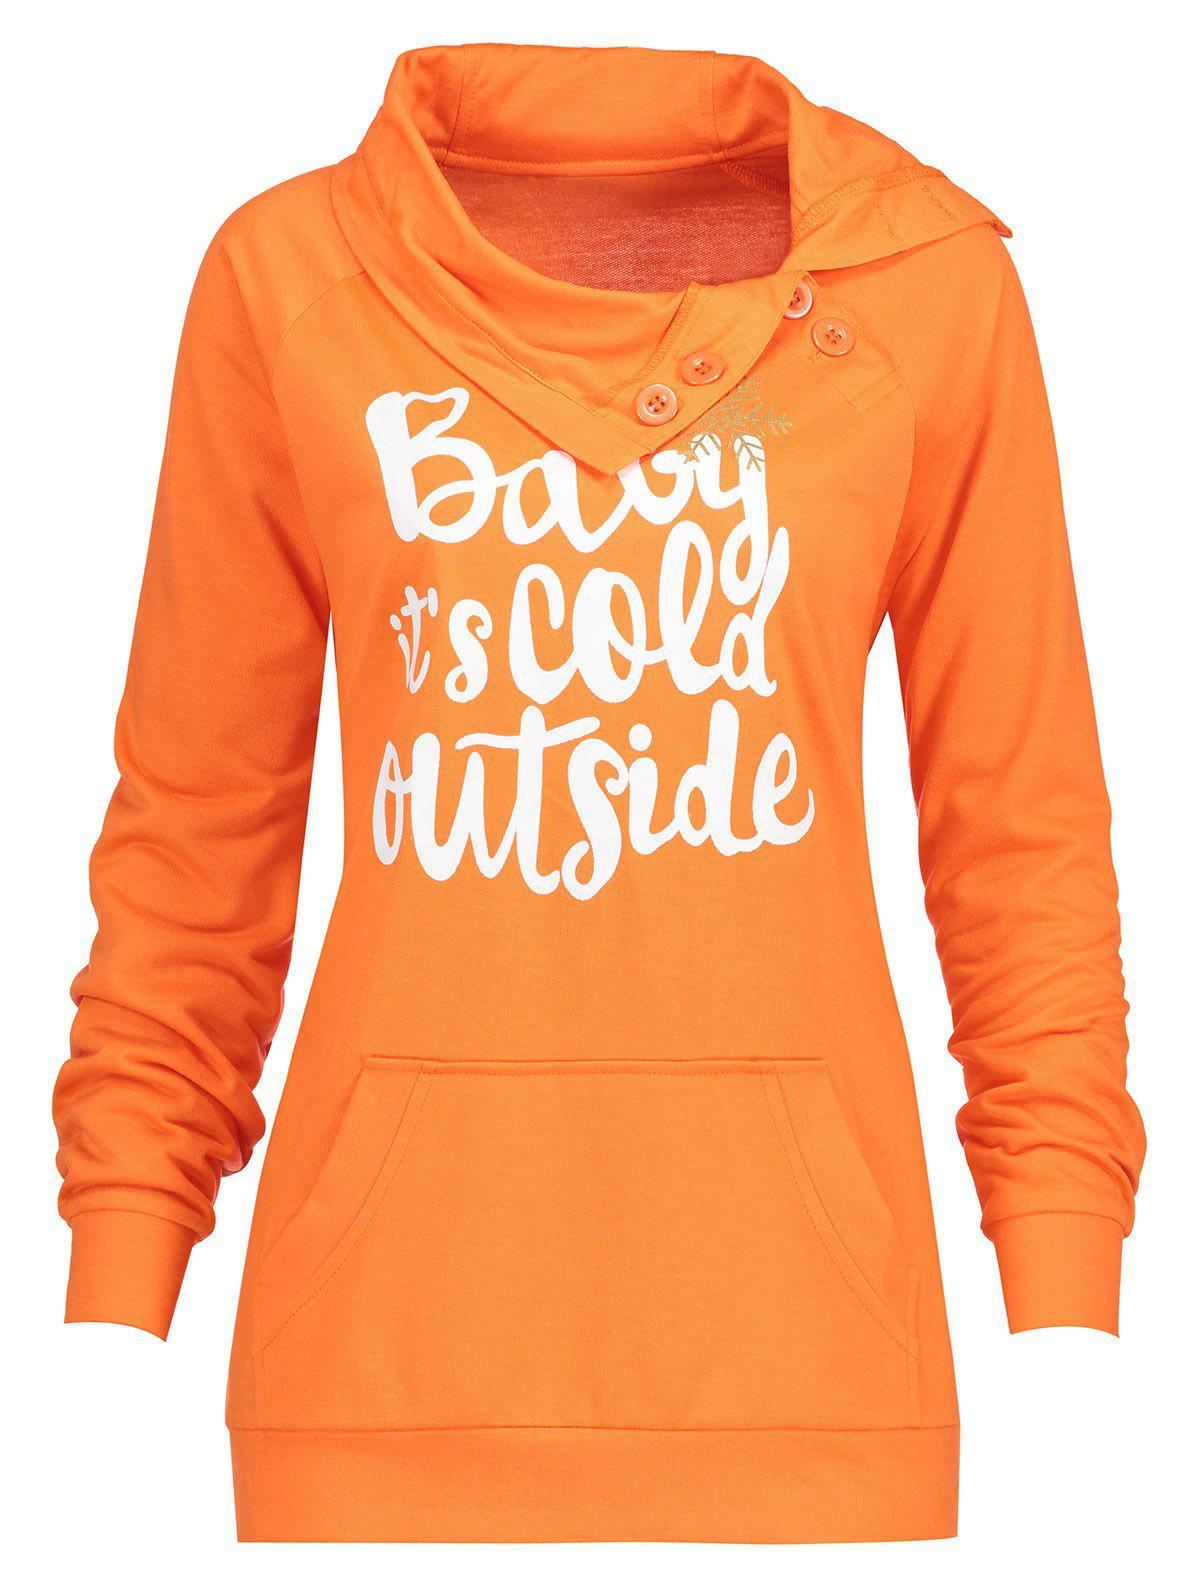 Christmas Letter Snowflake Print Plus Size SweatshirtWOMEN<br><br>Size: 2XL; Color: ORANGE; Material: Cotton,Polyester; Shirt Length: Regular; Sleeve Length: Full; Style: Fashion; Pattern Style: Letter; Season: Fall,Spring,Winter; Weight: 0.3600kg; Package Contents: 1 x Sweatshirt;